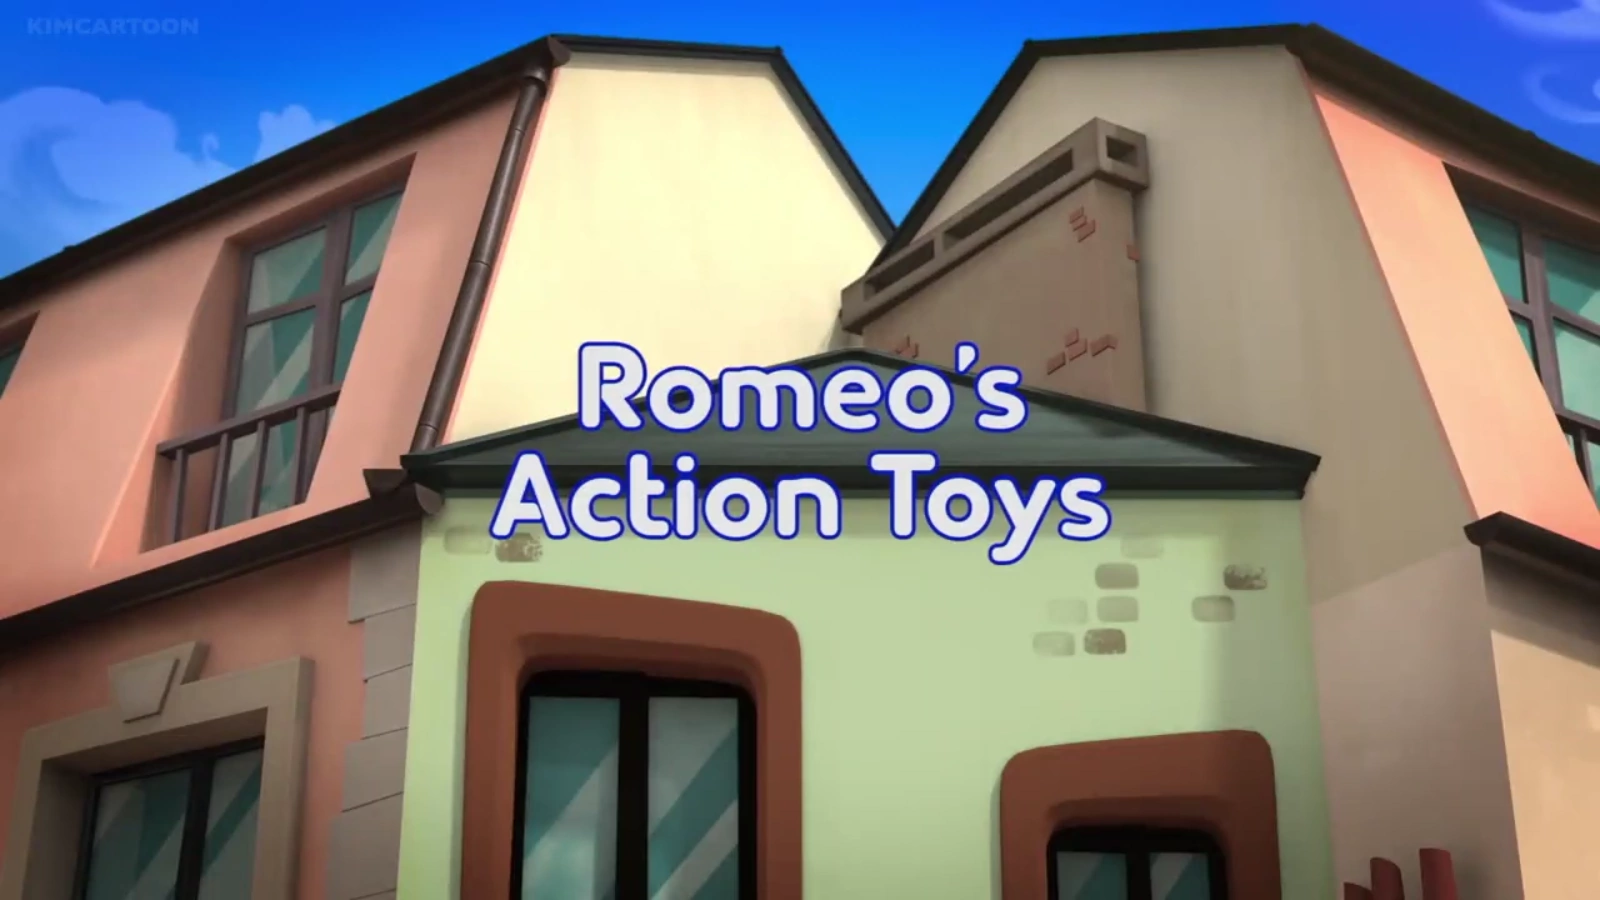 Romeo's Action Toys